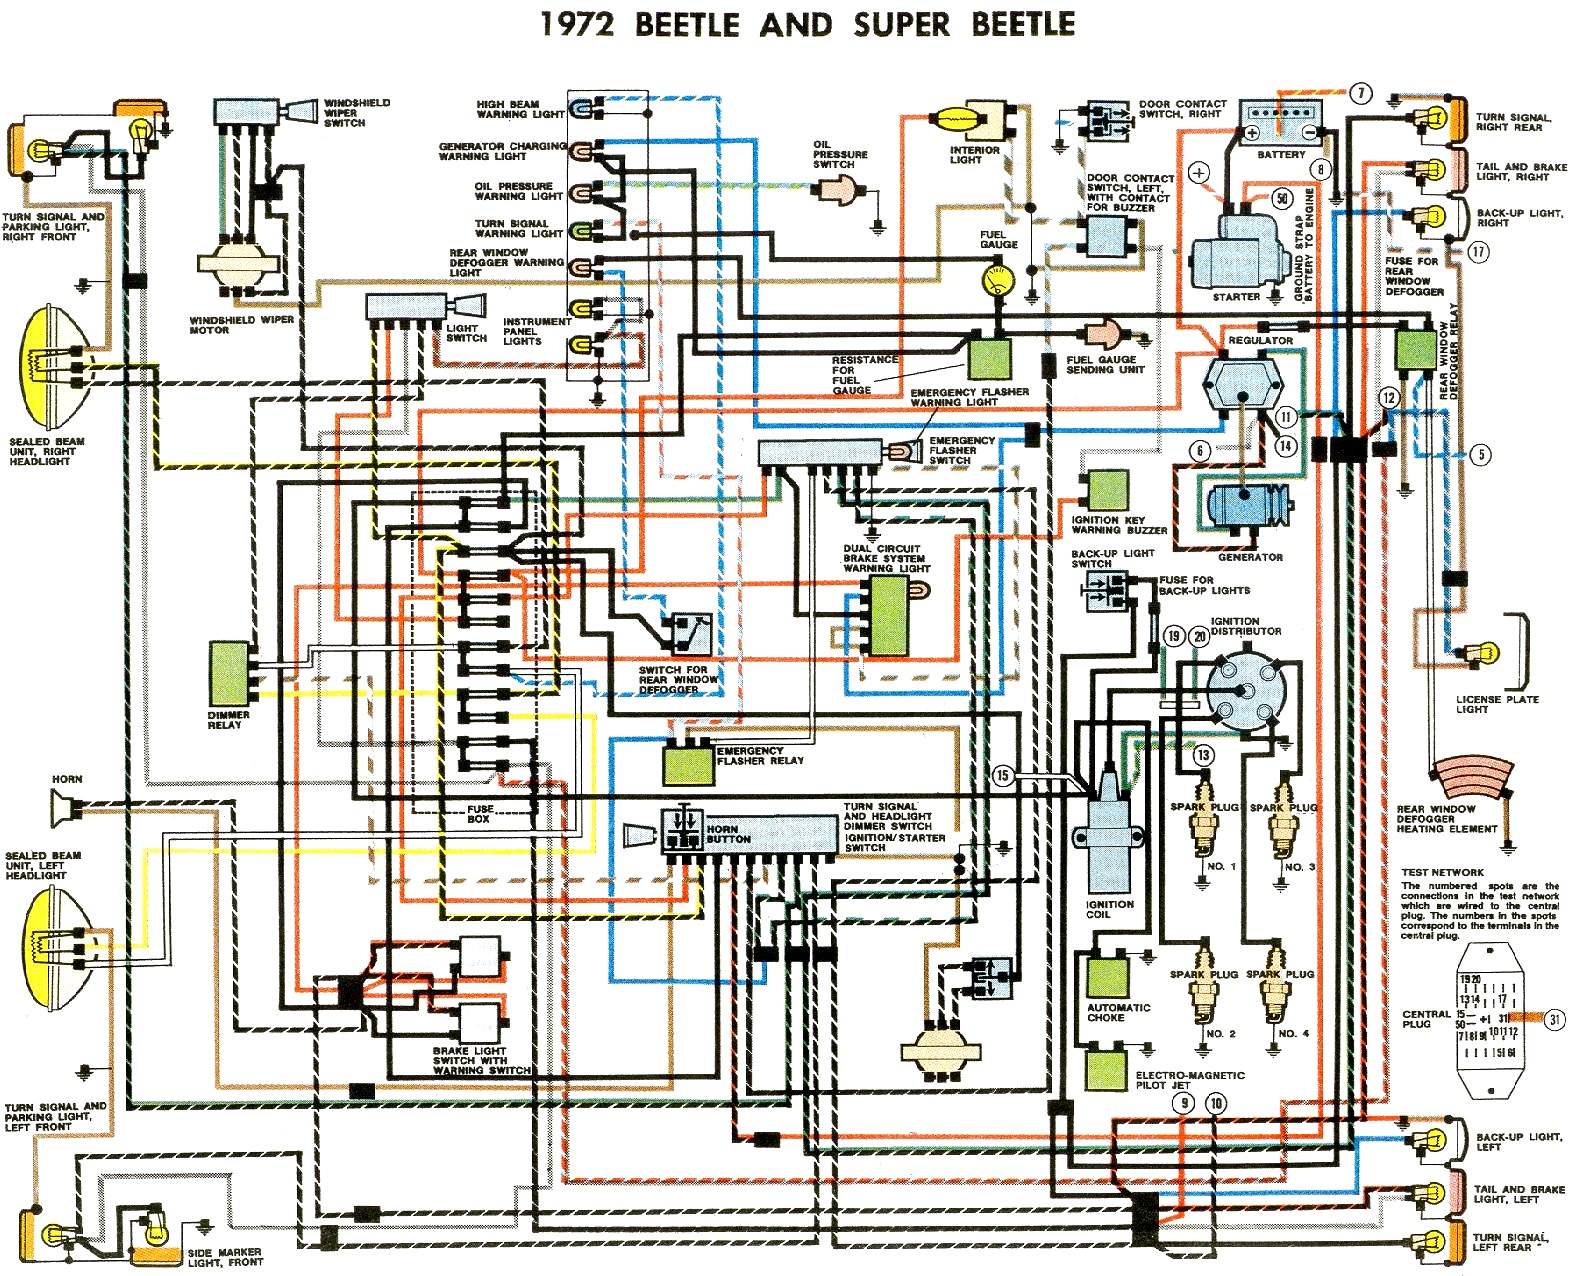 72 Vw Wiring Diagram - Wiring Diagram Dash Volkswagen Wiring Diagram on volkswagen fuse diagram, volkswagen relay diagram, volkswagen chassis, volkswagen engine diagram, volkswagen clutch diagram, volkswagen fuse chart, volkswagen air conditioning, volkswagen charging system diagram, volkswagen transaxle diagram, volkswagen ignition diagram, volkswagen fuel diagram, volkswagen brakes diagram, volkswagen firing order, volkswagen torque specs, volkswagen oil diagram, volkswagen key diagram, volkswagen vacuum diagram, volkswagen electrical system, volkswagen r400,